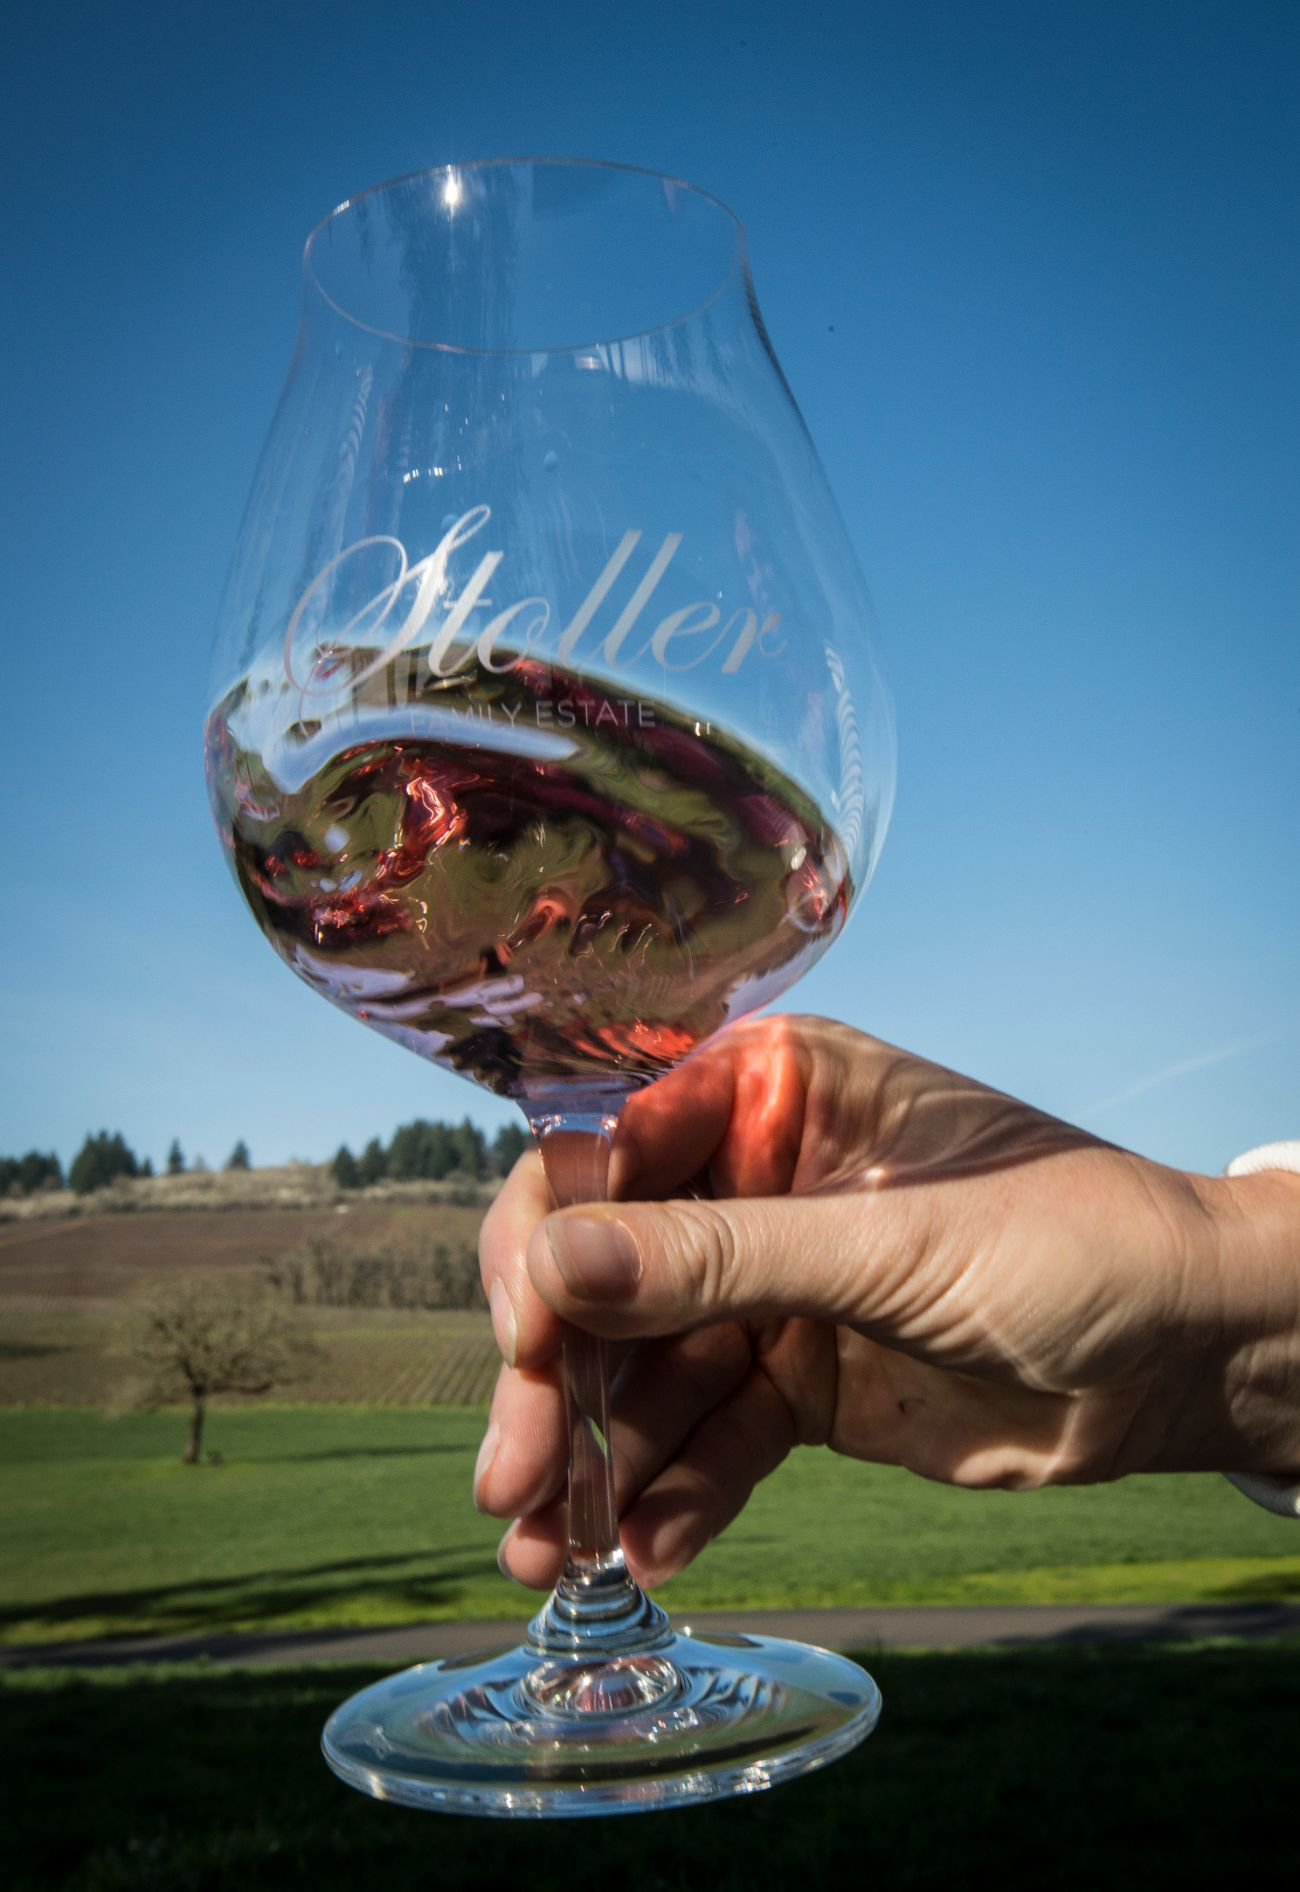 Rose swirling in a Stoller Family Estates glass at a vineyard